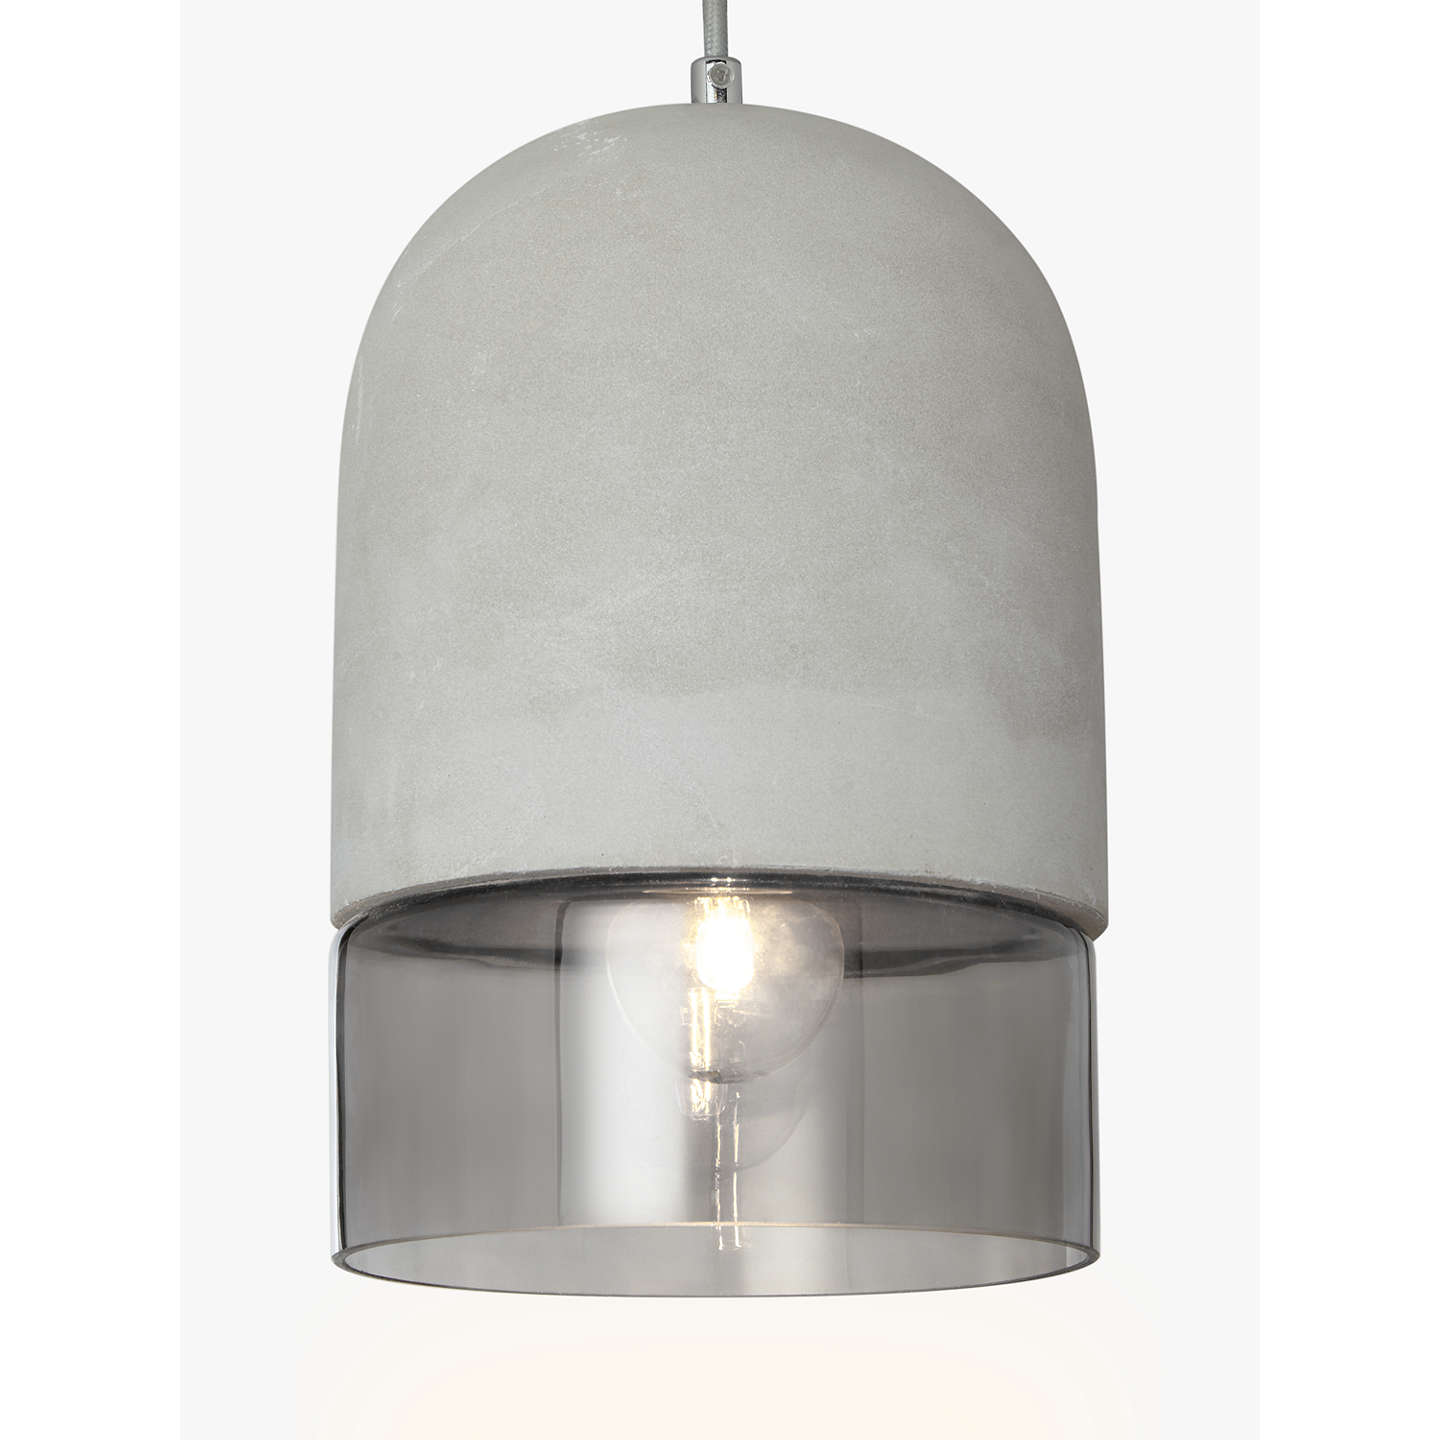 John lewis atlas ceiling light concretesmoke glass at john lewis buyjohn lewis atlas ceiling light concretesmoke glass online at johnlewis aloadofball Image collections